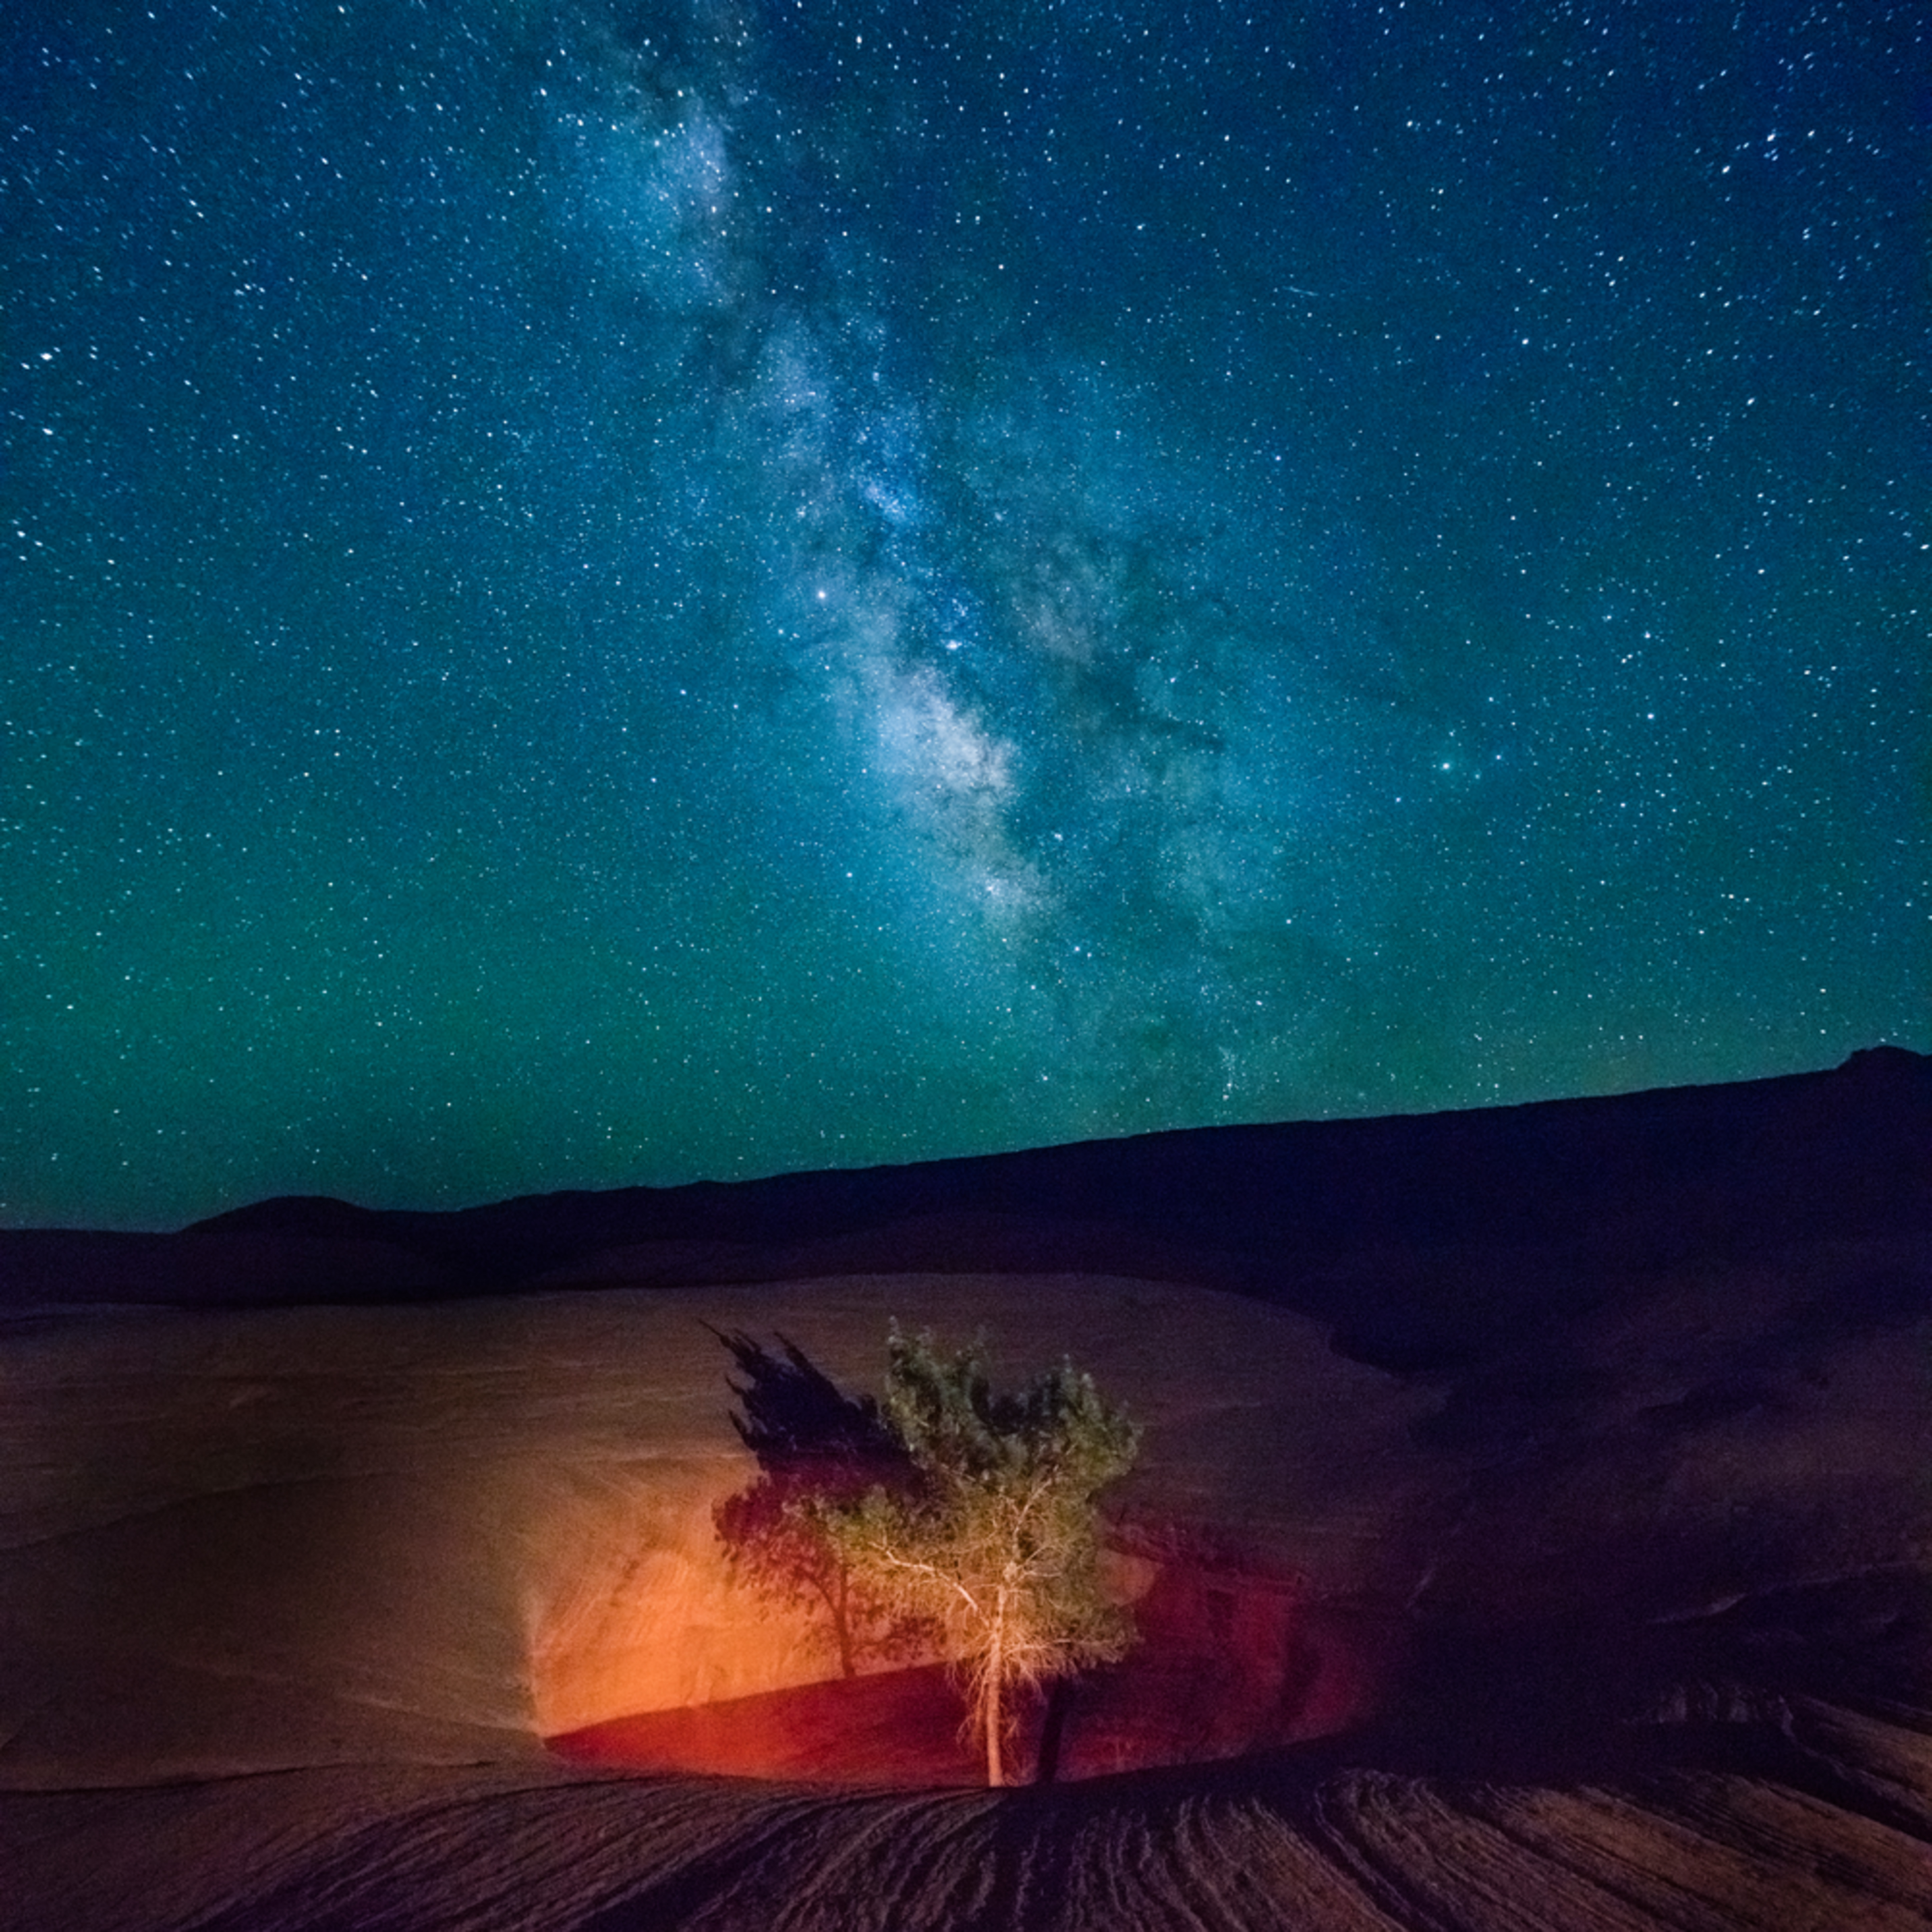 Lone tree with the milky way egrpm0